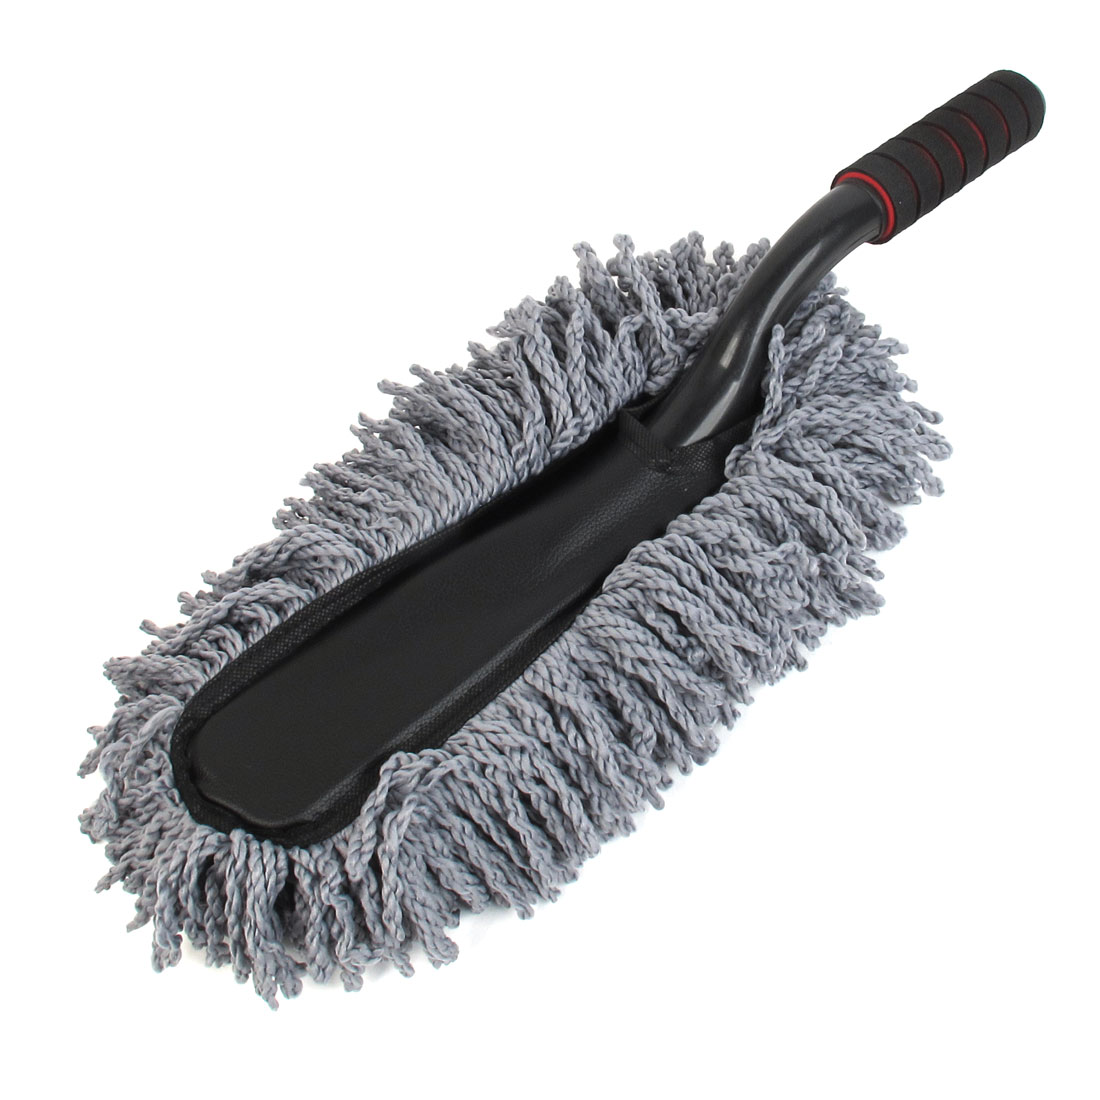 Car Truck Foam Handle Dirt Clean Brush Duster Cleaning Dusting Tool 50cm Long